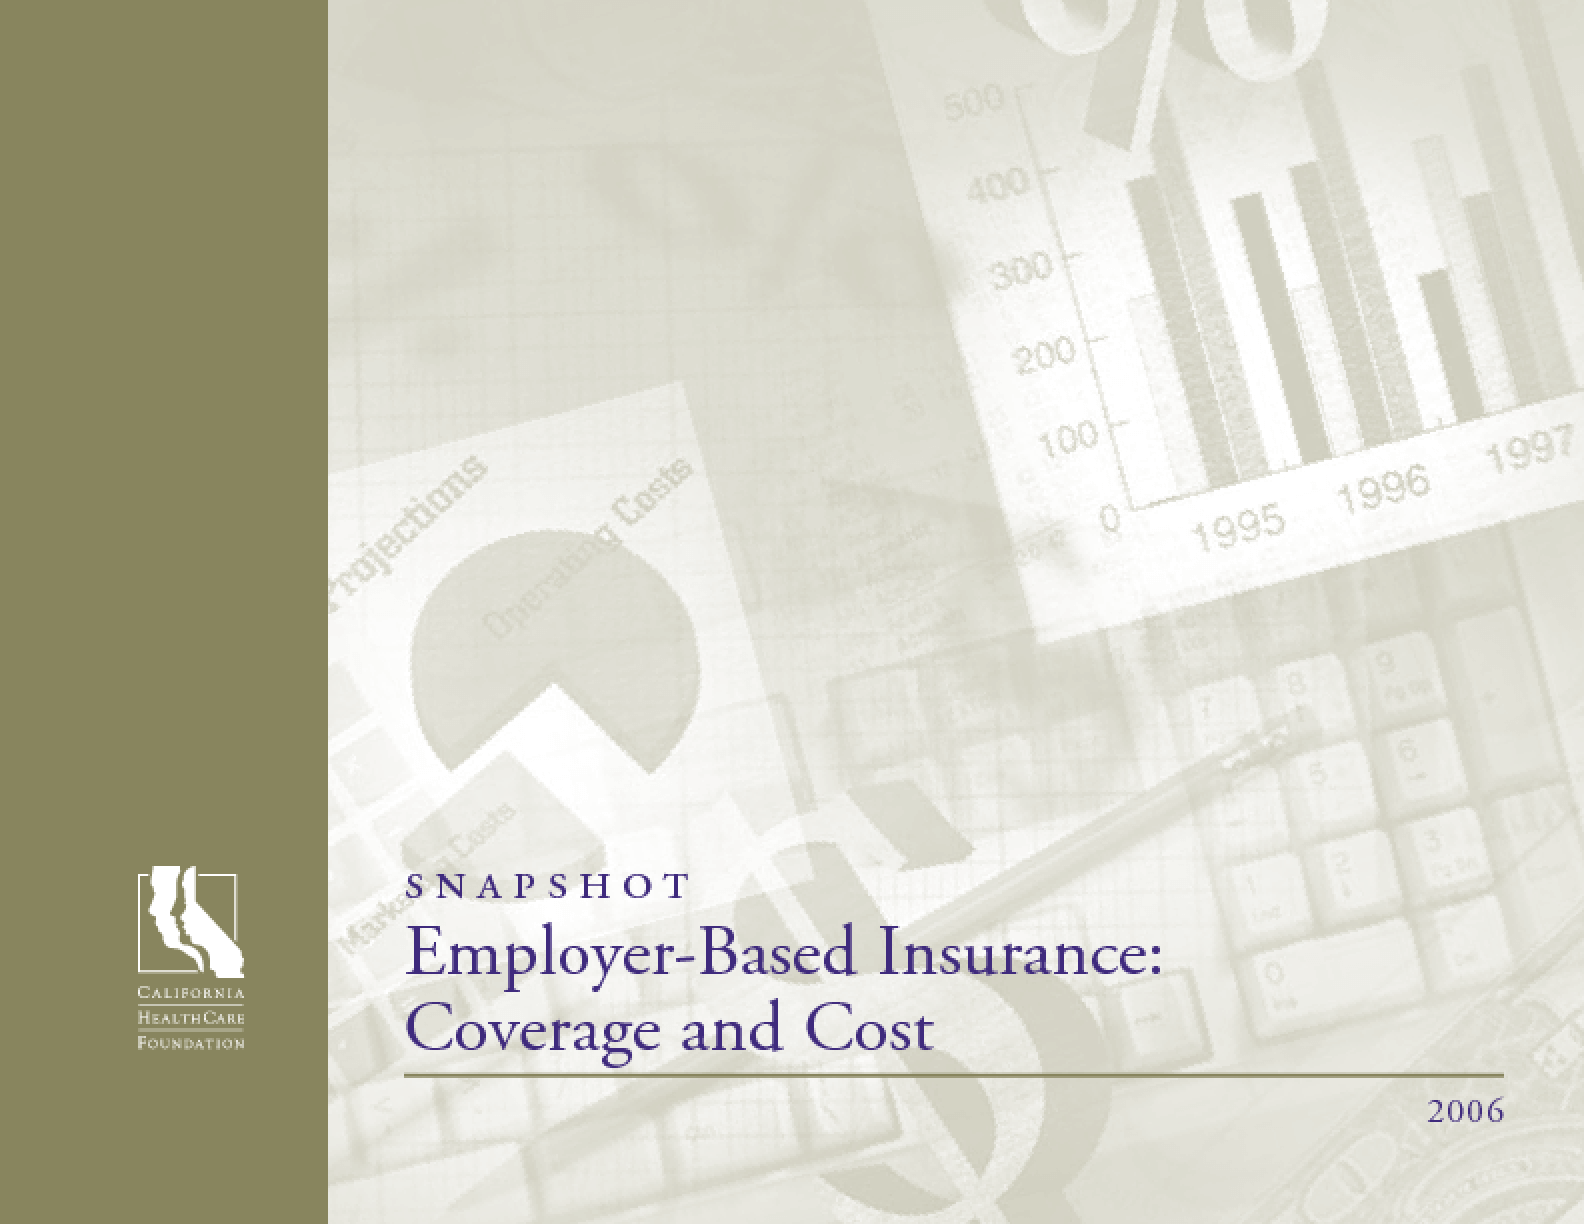 Employer-Based Insurance: Coverage and Cost